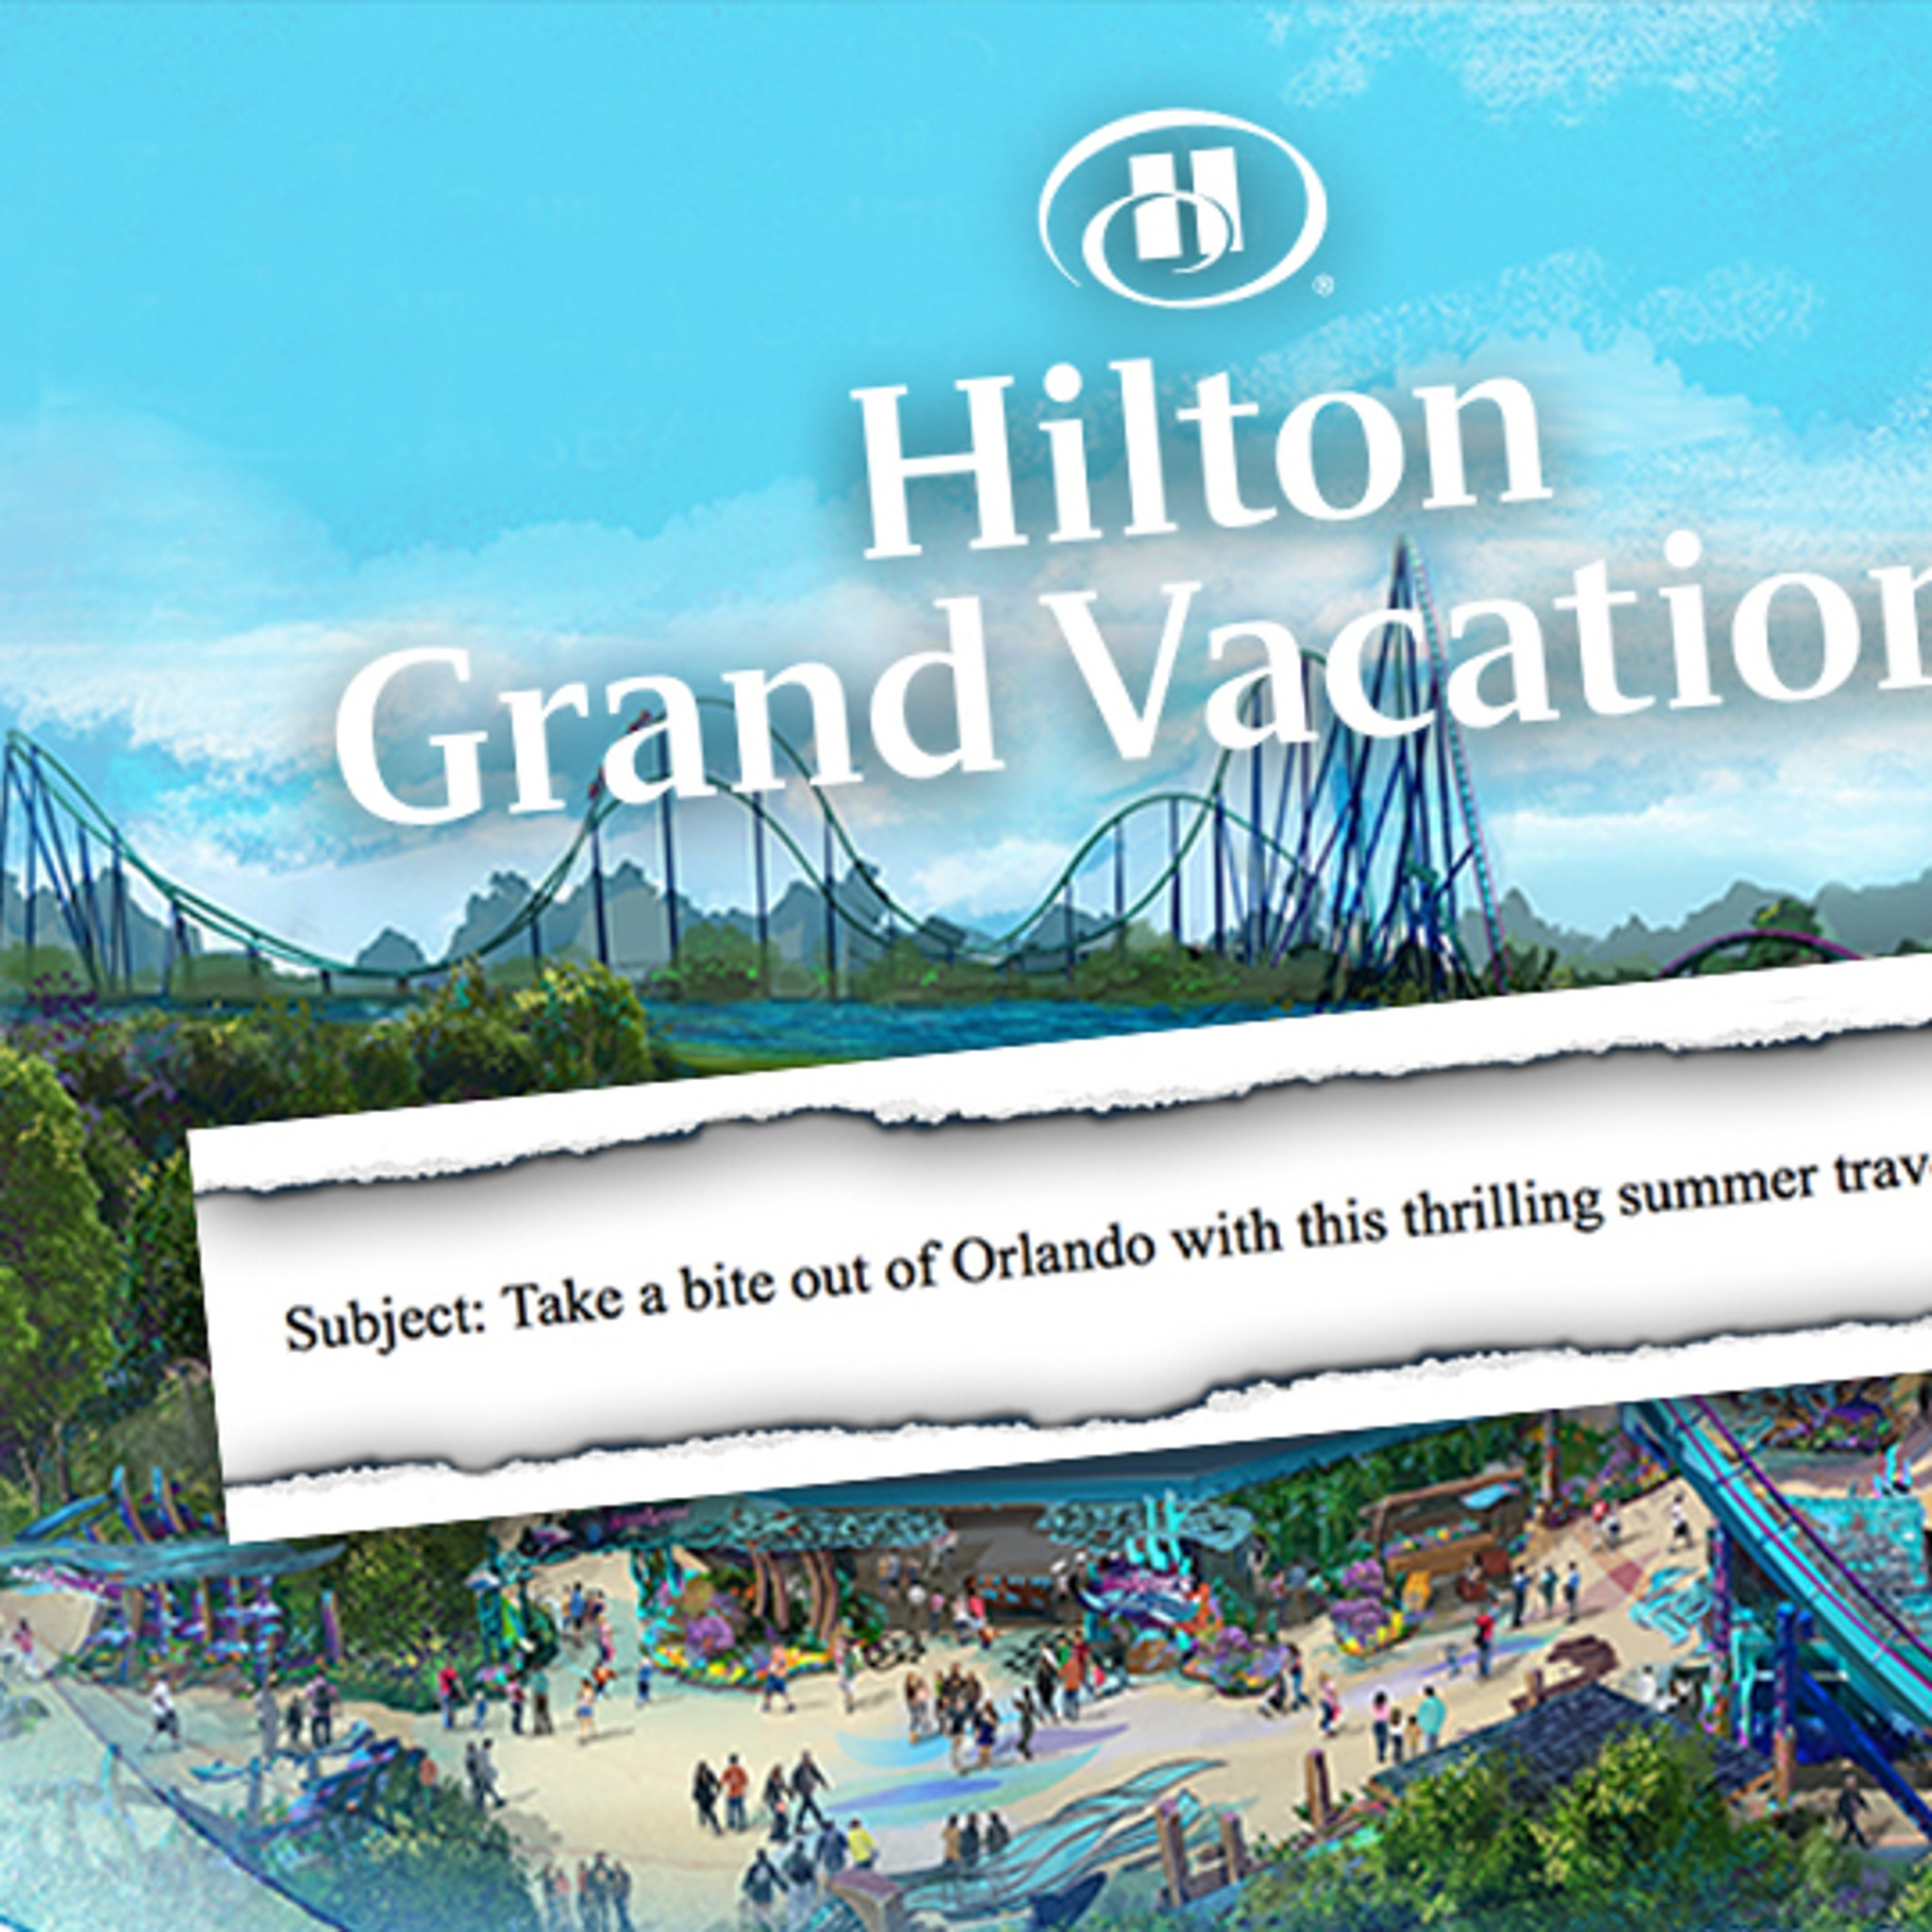 Disney Attack: Hilton Apologizes for Biting Email